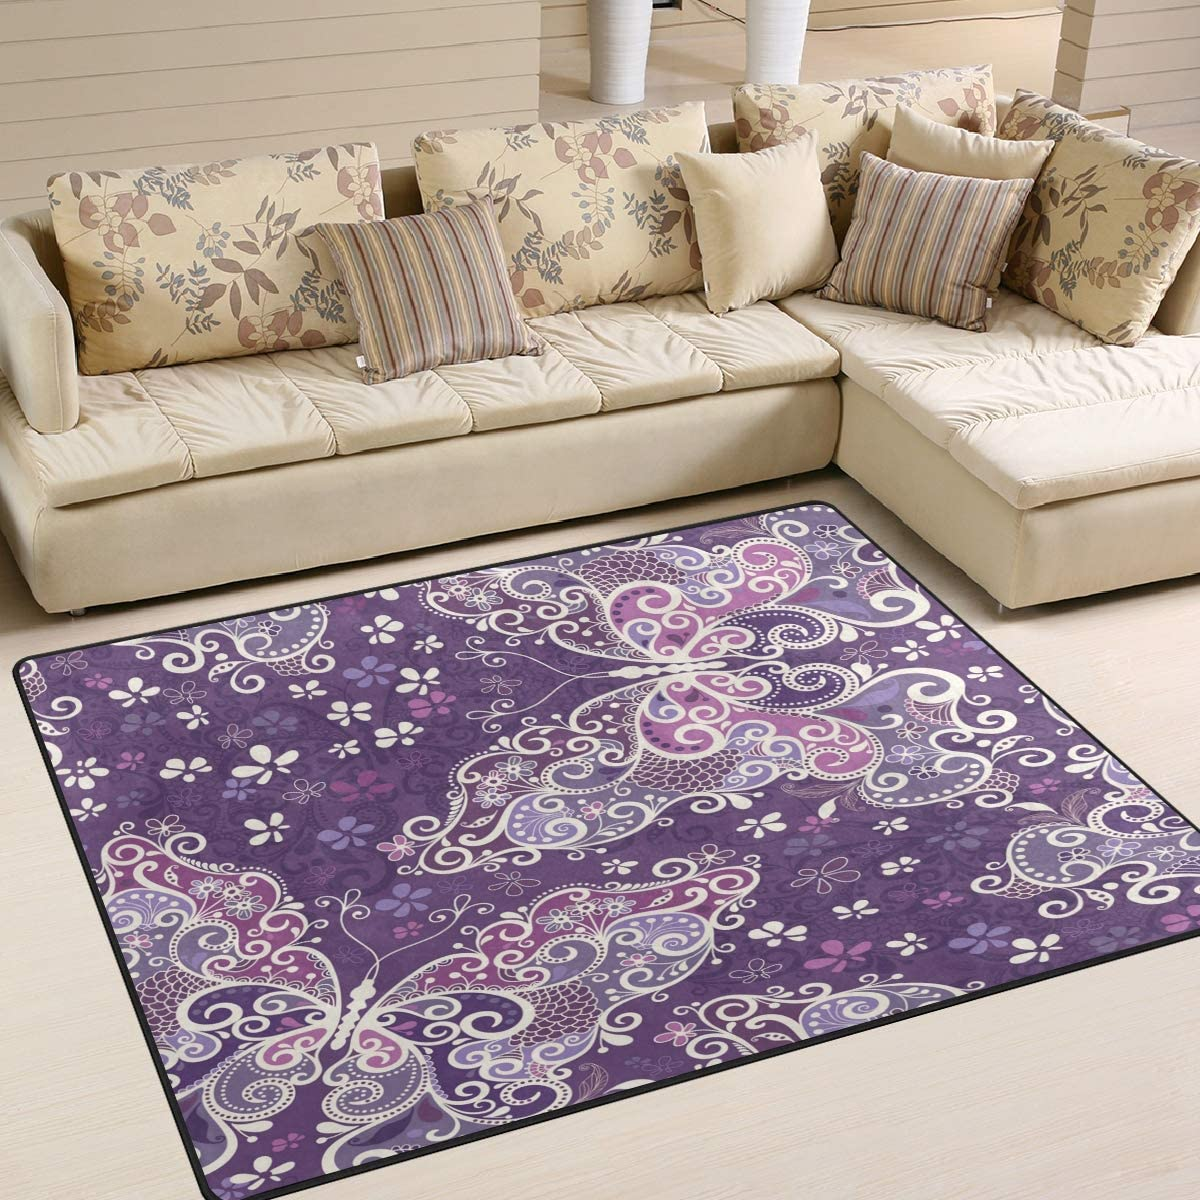 ALAZA Purple Butterfly Floral Print Area Rug Rugs for Living Room Bedroom 7 x 5